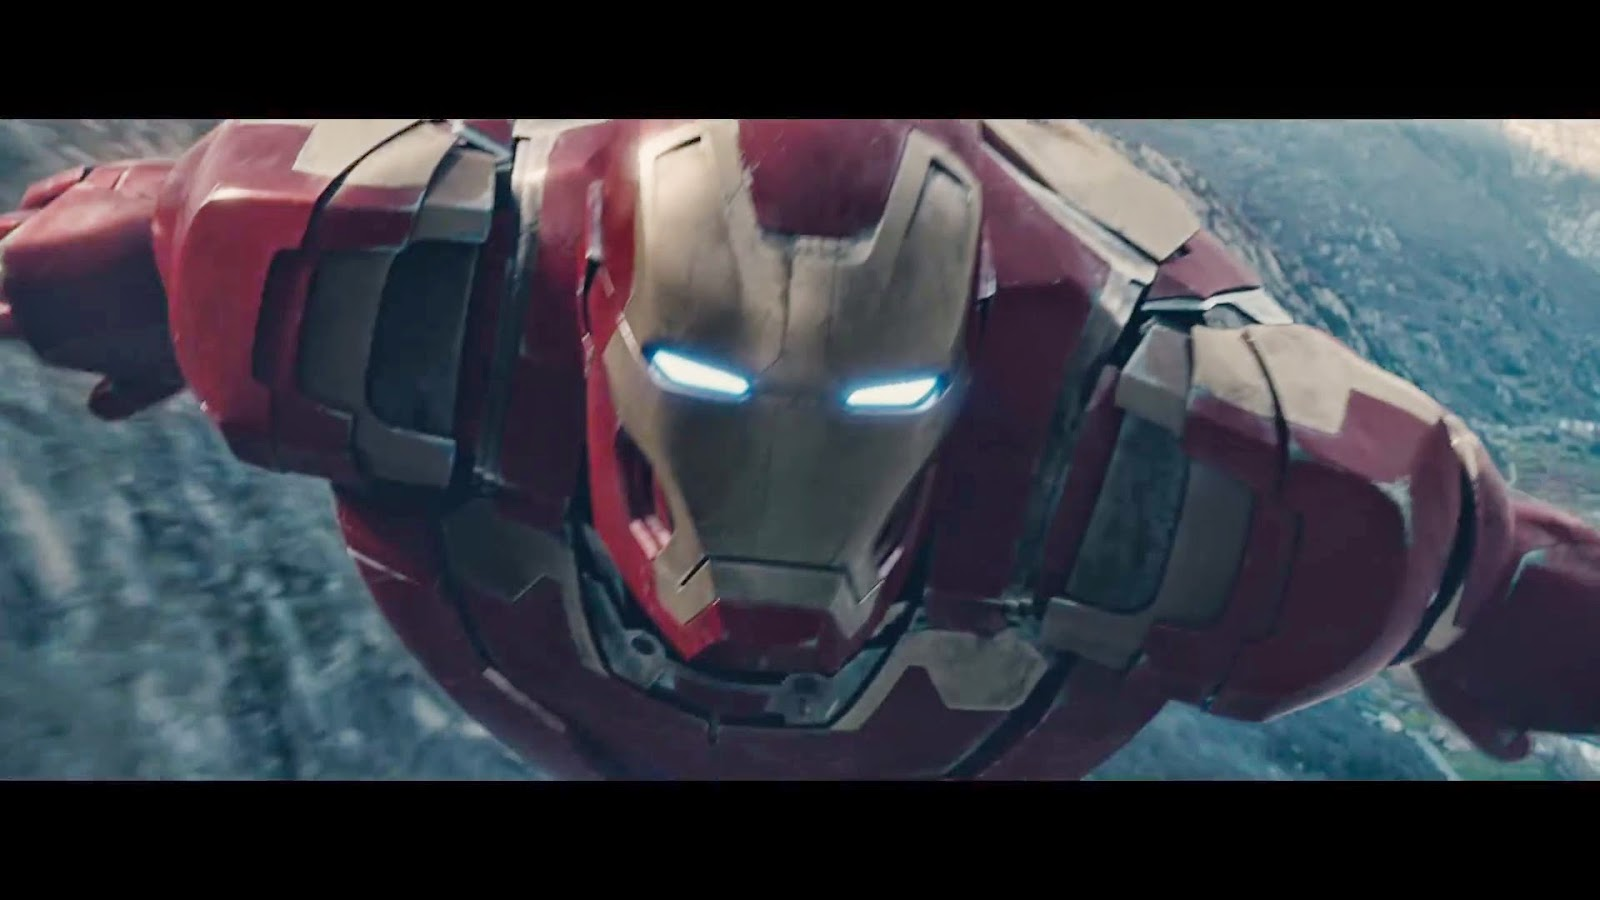 Avengers 2 age of ultron official extended trailer 2 2015 hd jpg